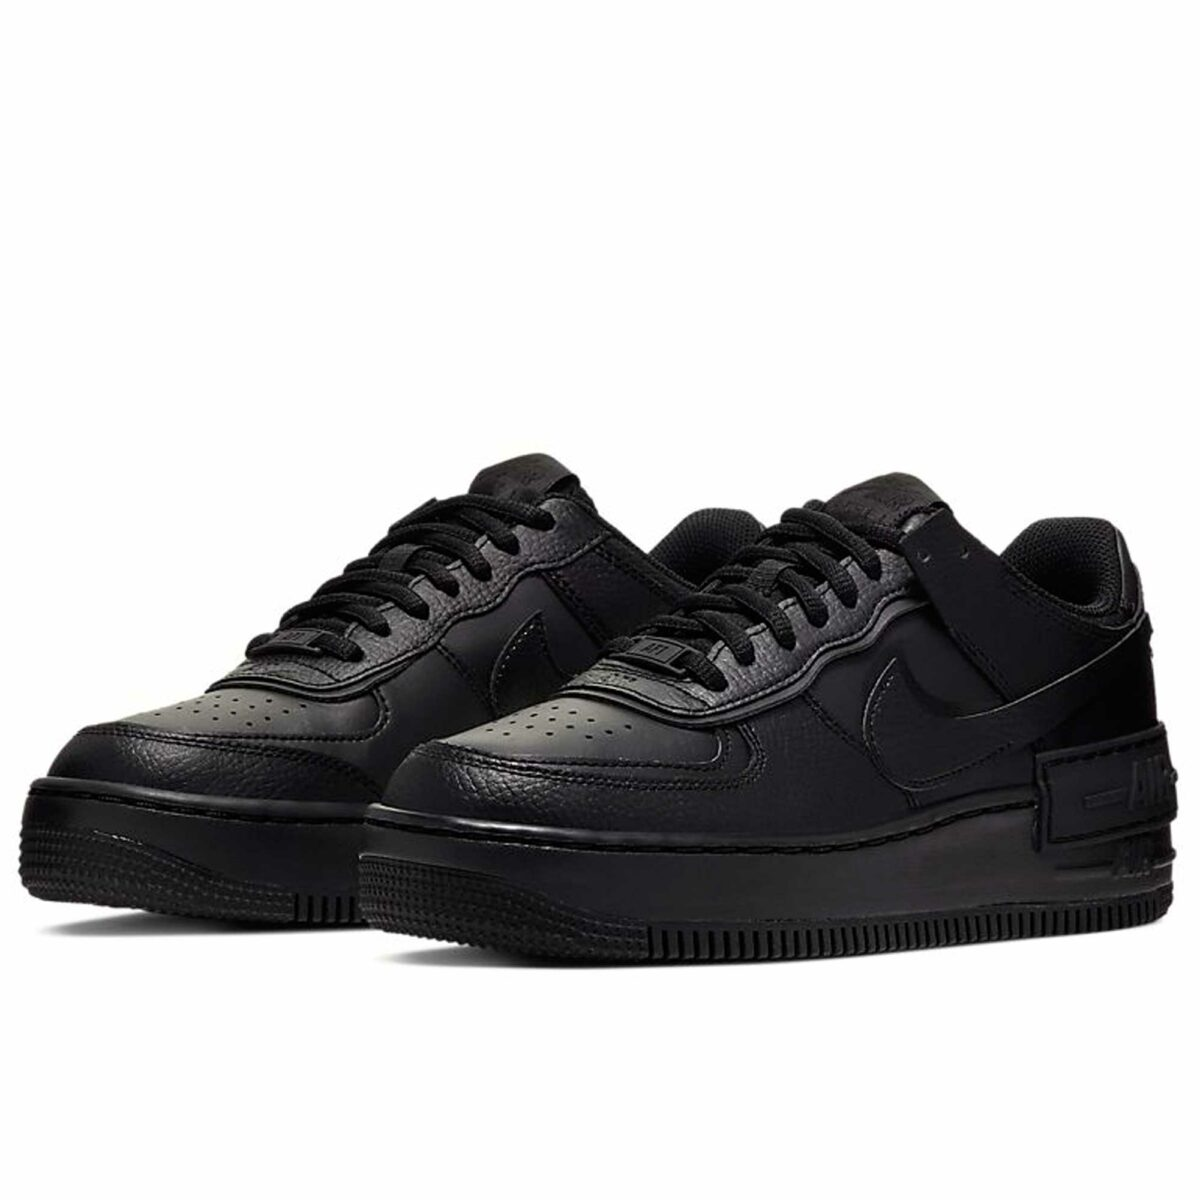 nike air force 1 shadow all black CI0919_001 купить